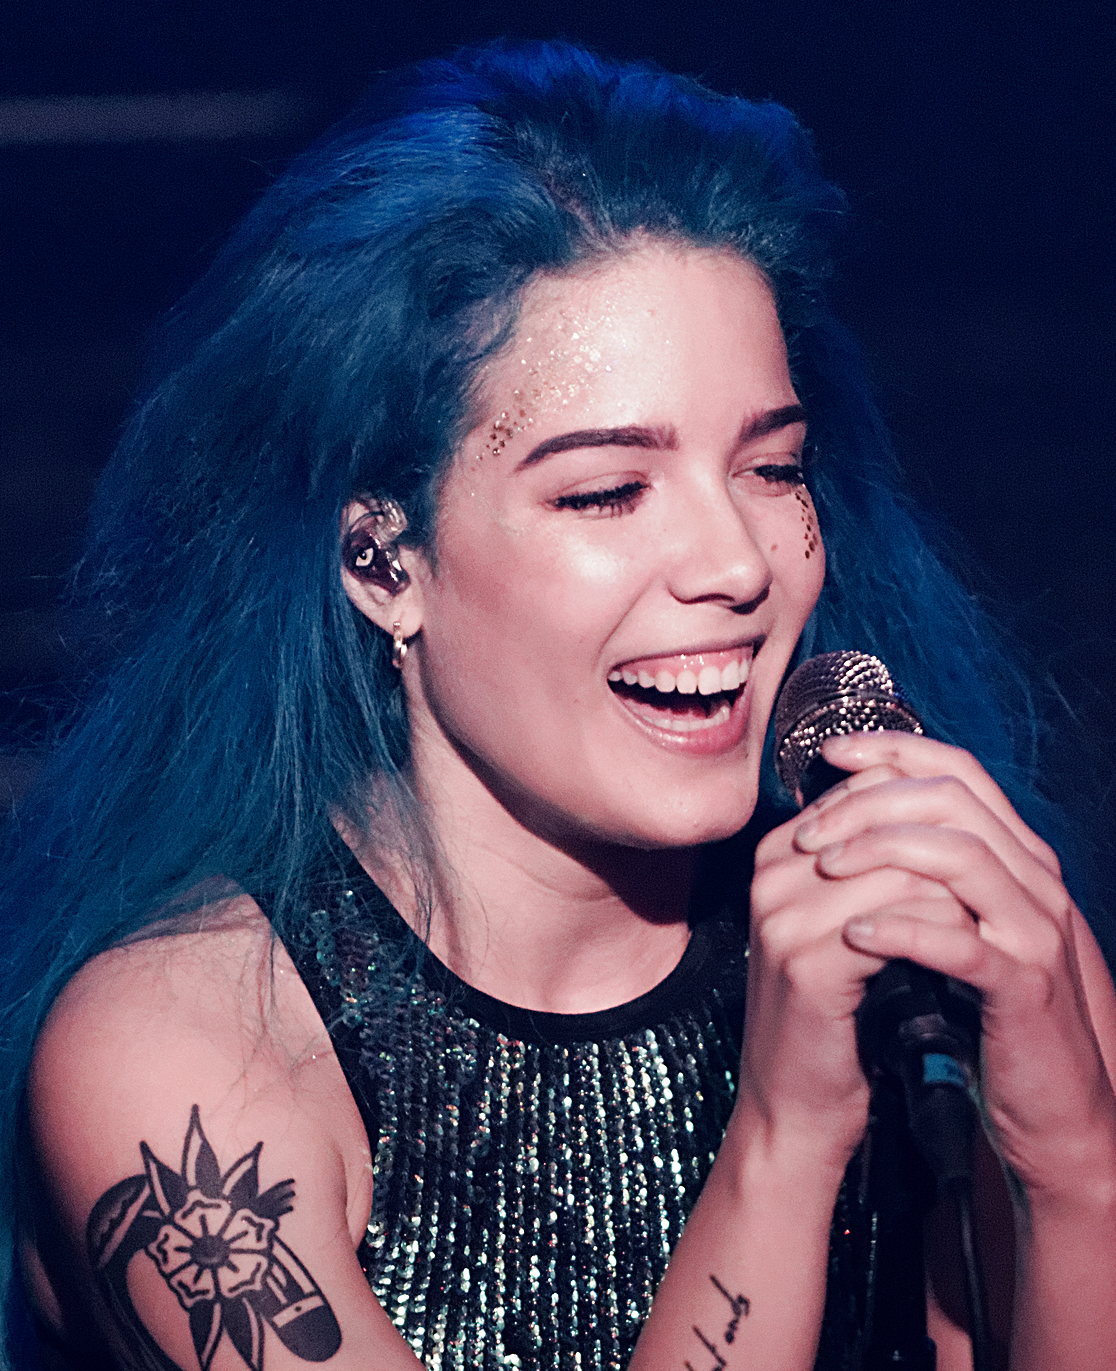 Halsey (cantante) - Wikipedia1116 x 1371